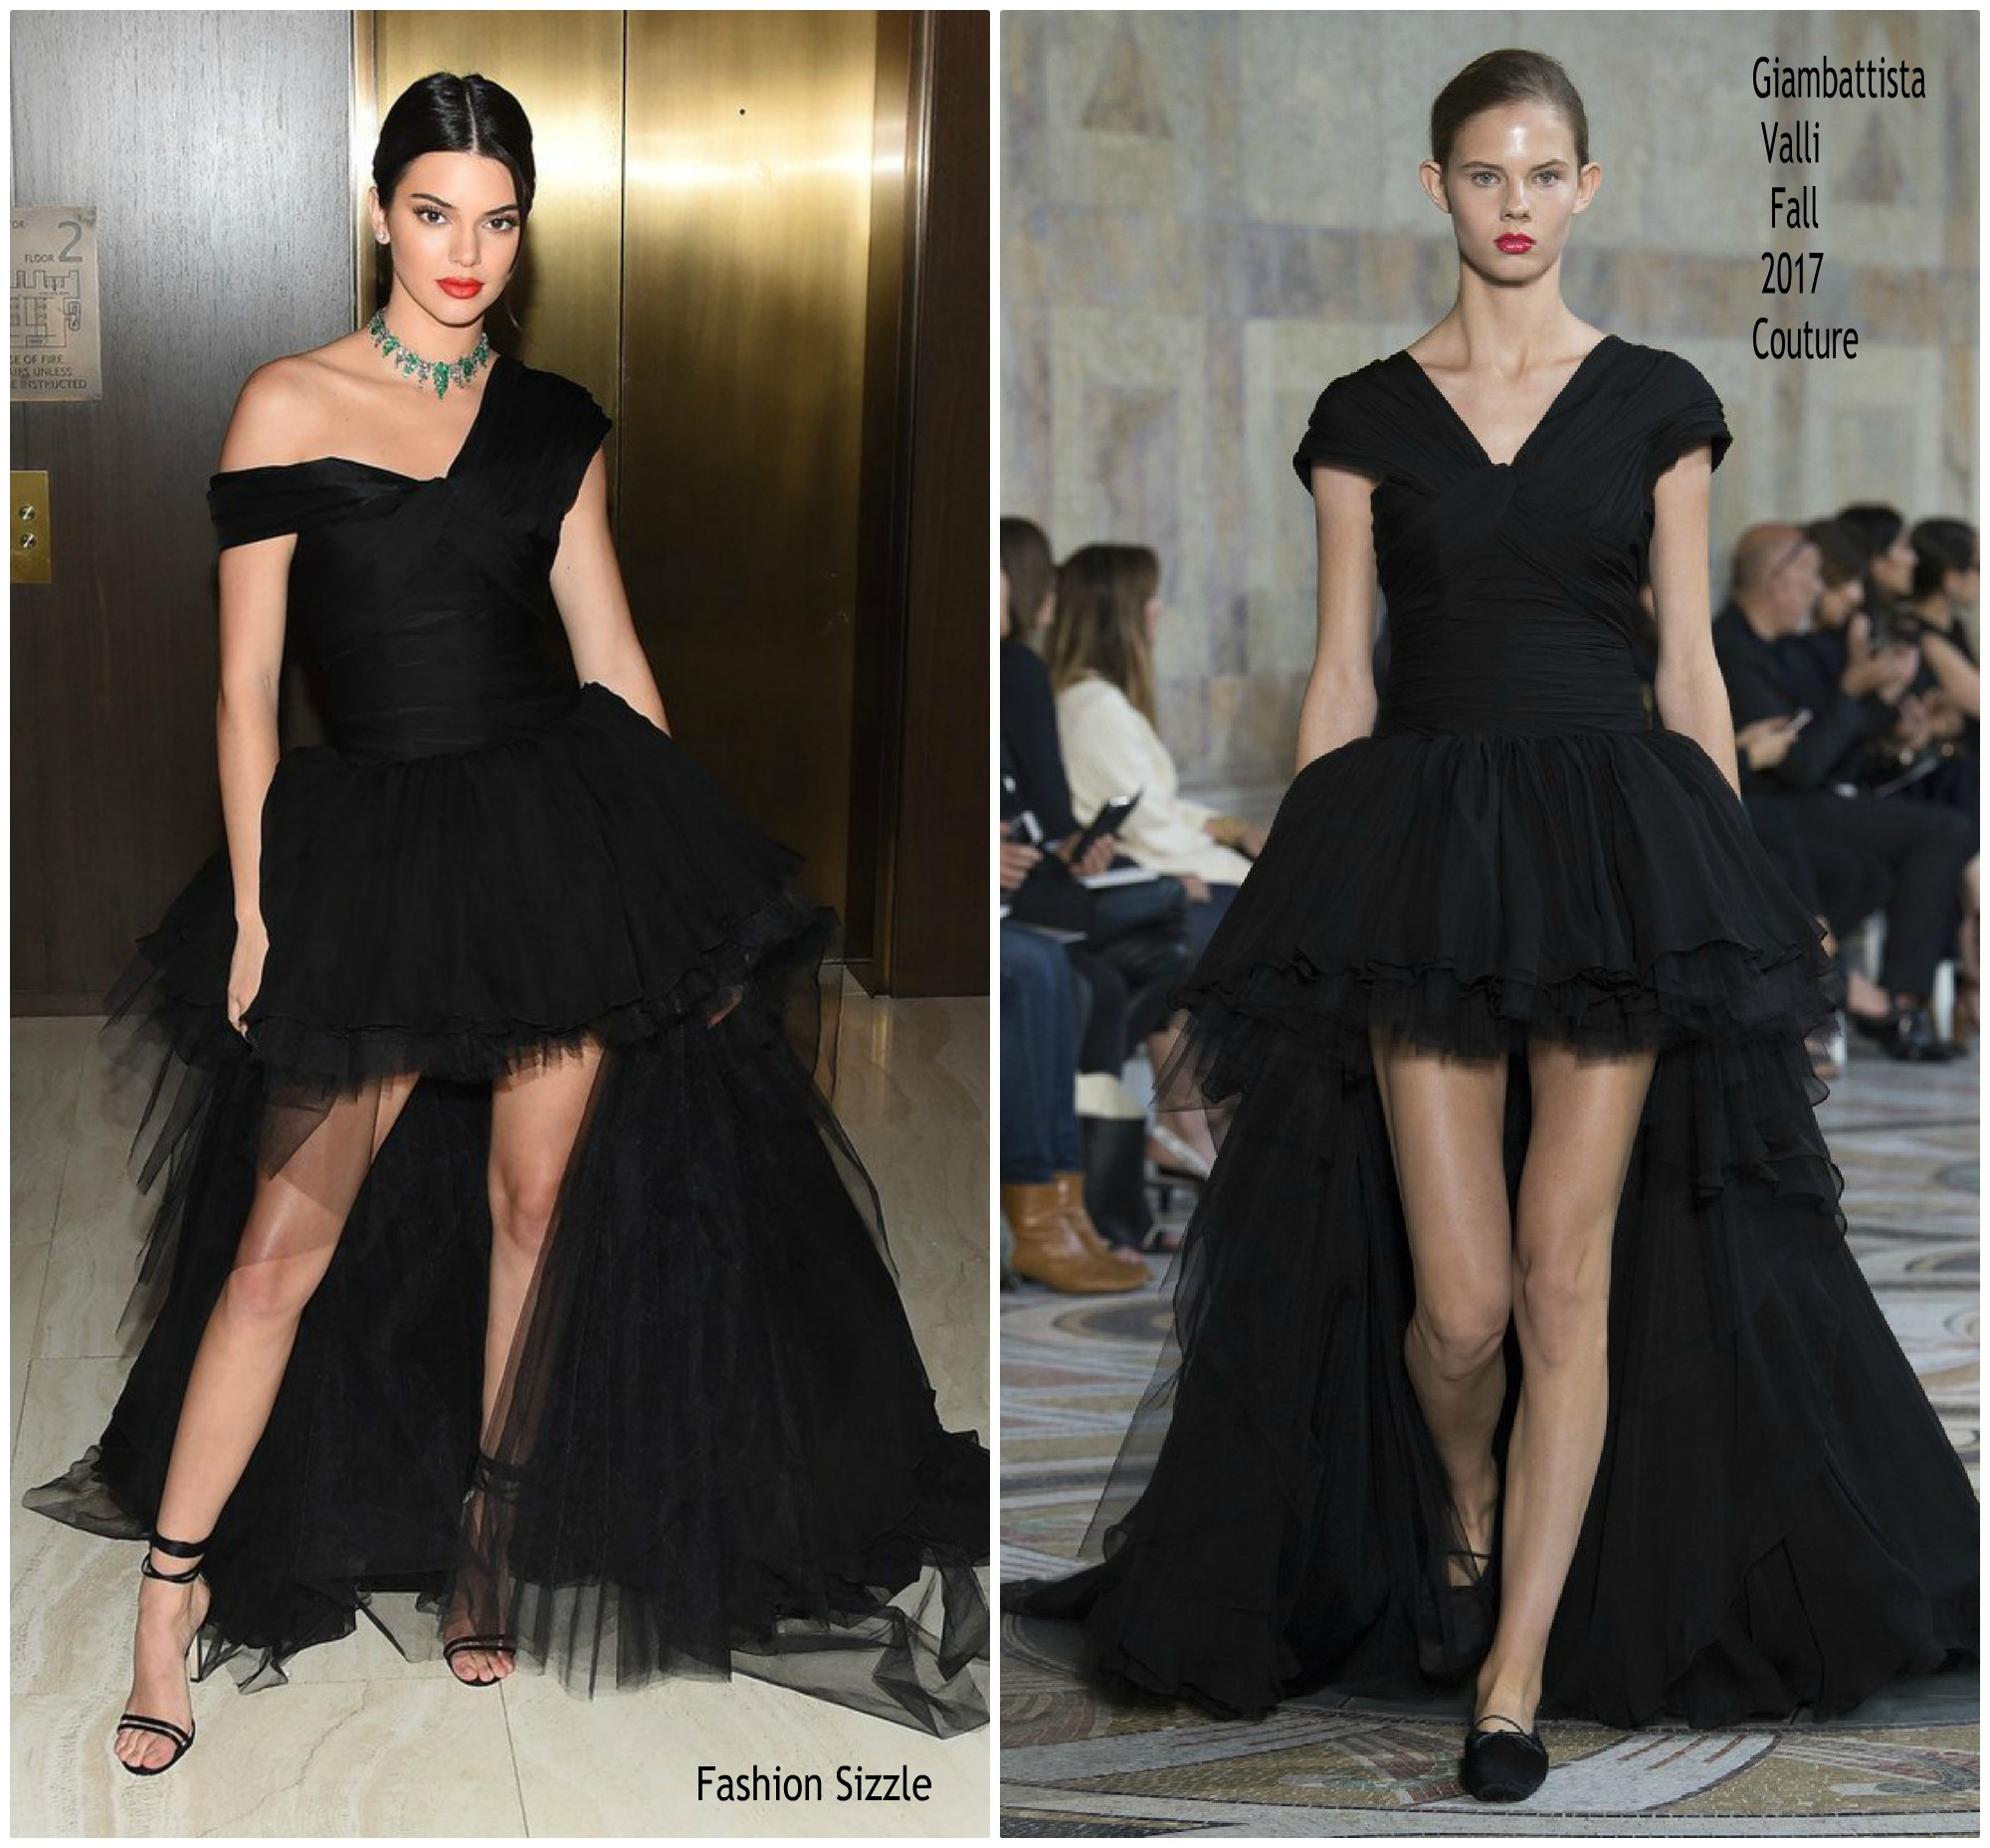 kendall-jenner-in-giambattista-valli-daily-front-rows-fashion-media-awards